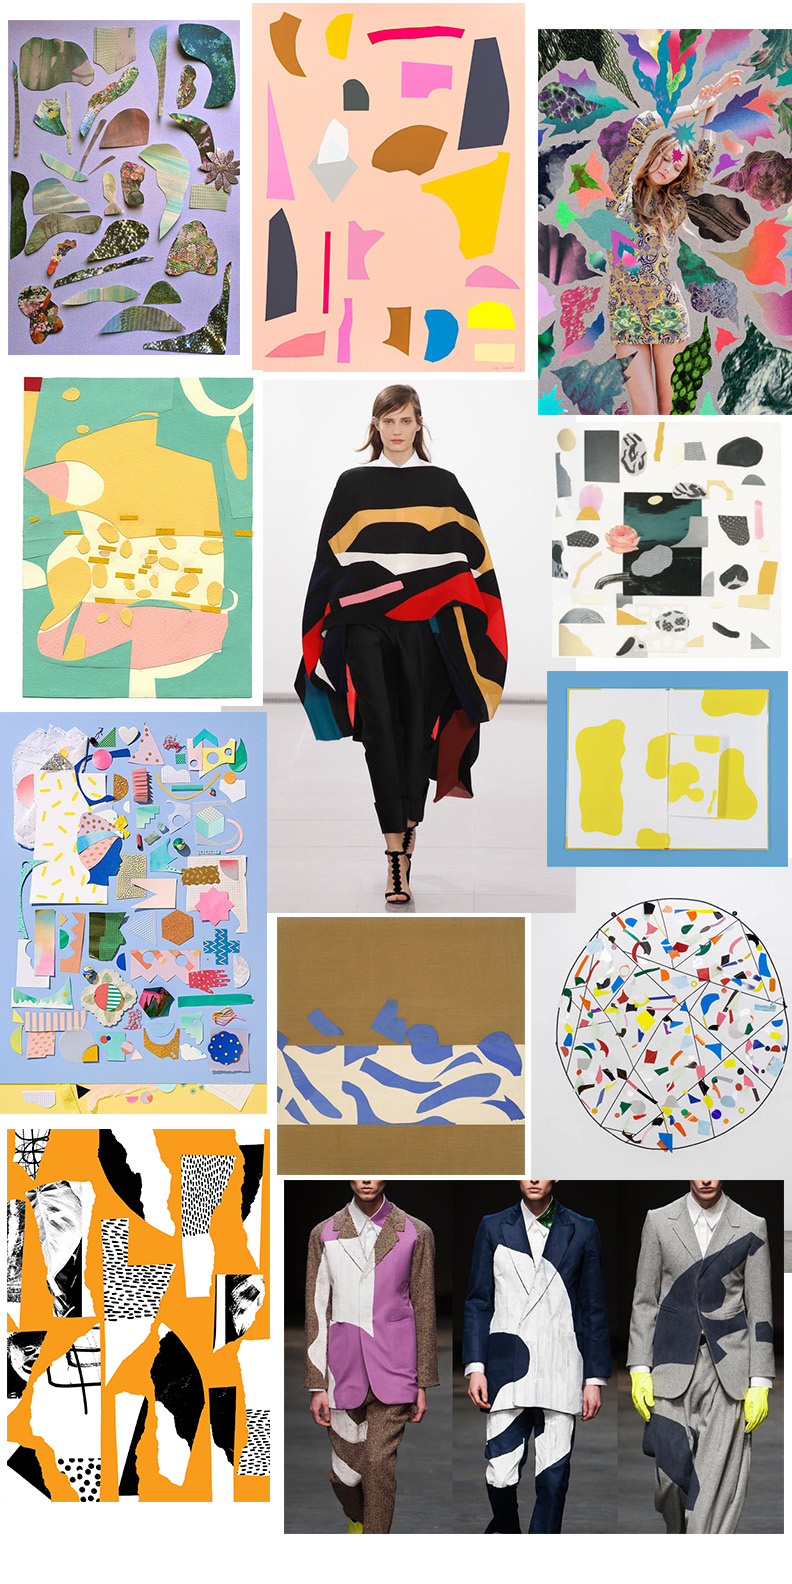 Clockwise from upper left: Fanny Rose, Kira Jamison, Hisham Akira Bharoocha, Jessica Williams, Nathan Carter, Alan Taylor 2014, Atelier Bingo, Beci Orpin and Sean Fennessy, Hernan Paganini Puloverchito, Issa Fall 2014, Violette Hurry De France,   Henri Matisse,